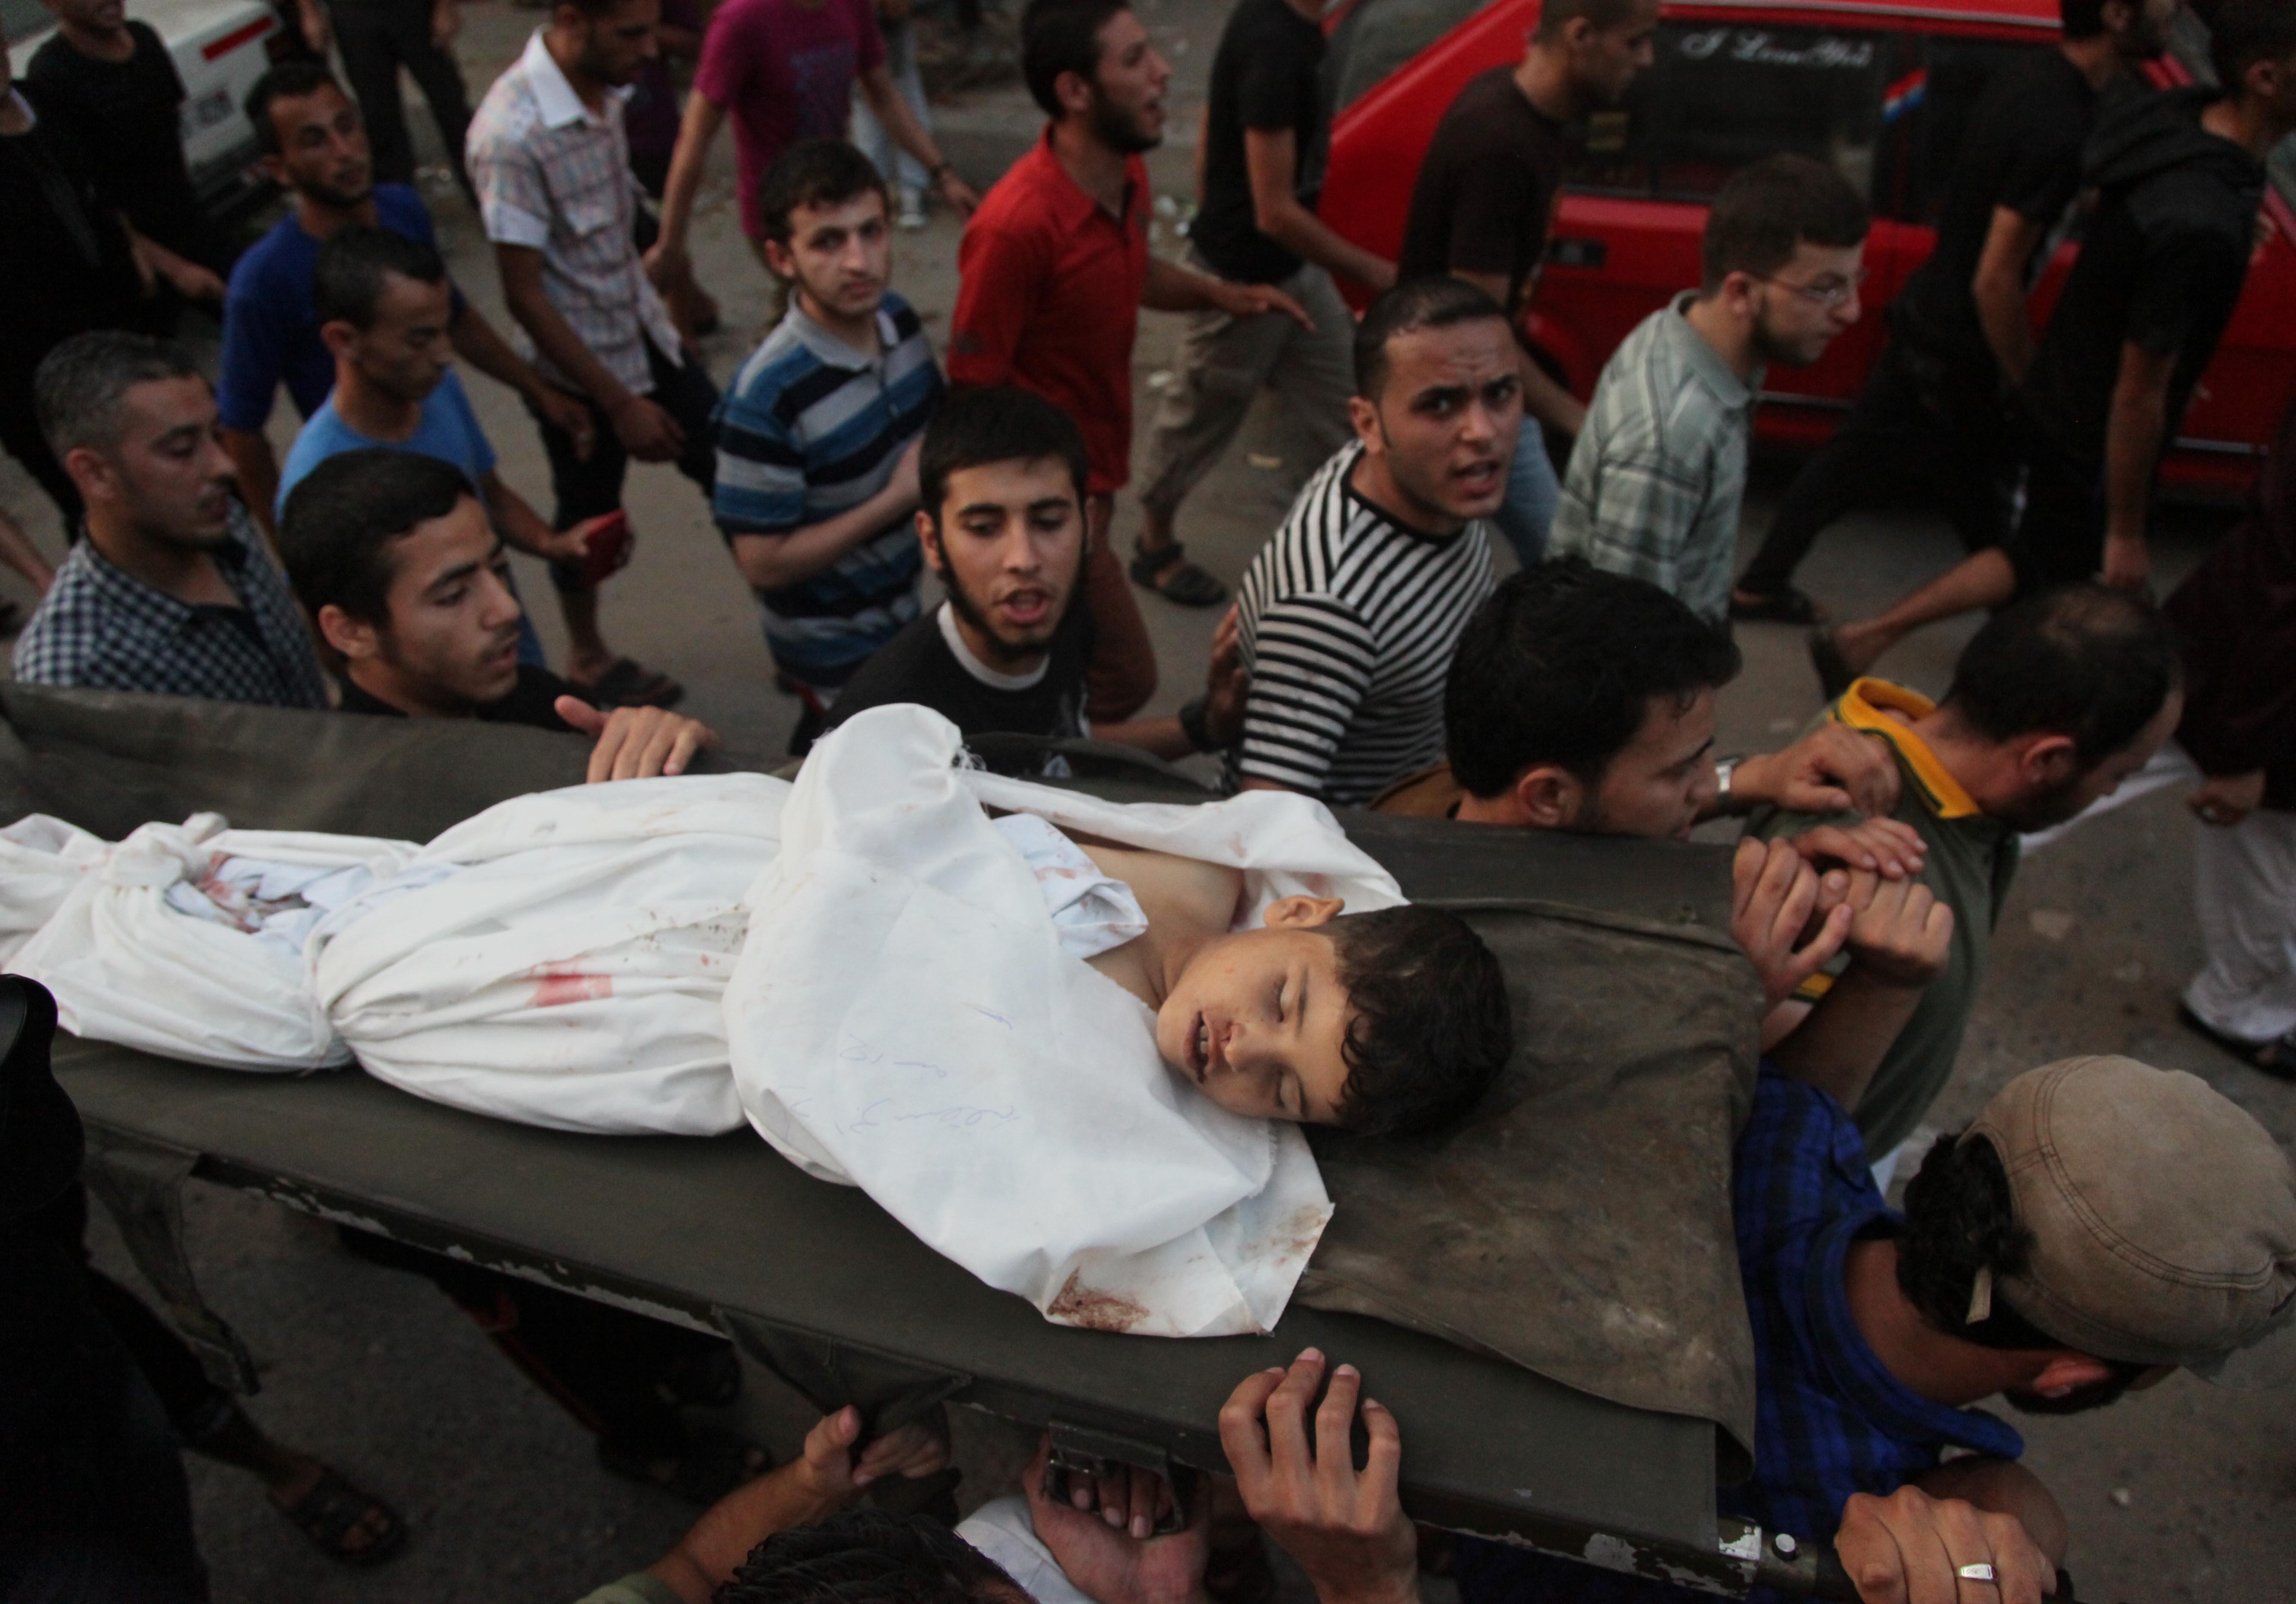 Palestinians chant slogans while carrying the body, who was killed along with 9 other people, all but one of them children, in an explosion at a park at the Shati refugee camp, in the northern Gaza Strip, Monday, July 28, 2014. At least 10 Palestinians are killed and more than 40 are injured in two Israeli airstrikes in the Gaza Strip, medics say, adding that most of the casualties are children. (Photo credit: Mohammed Zaanoun)